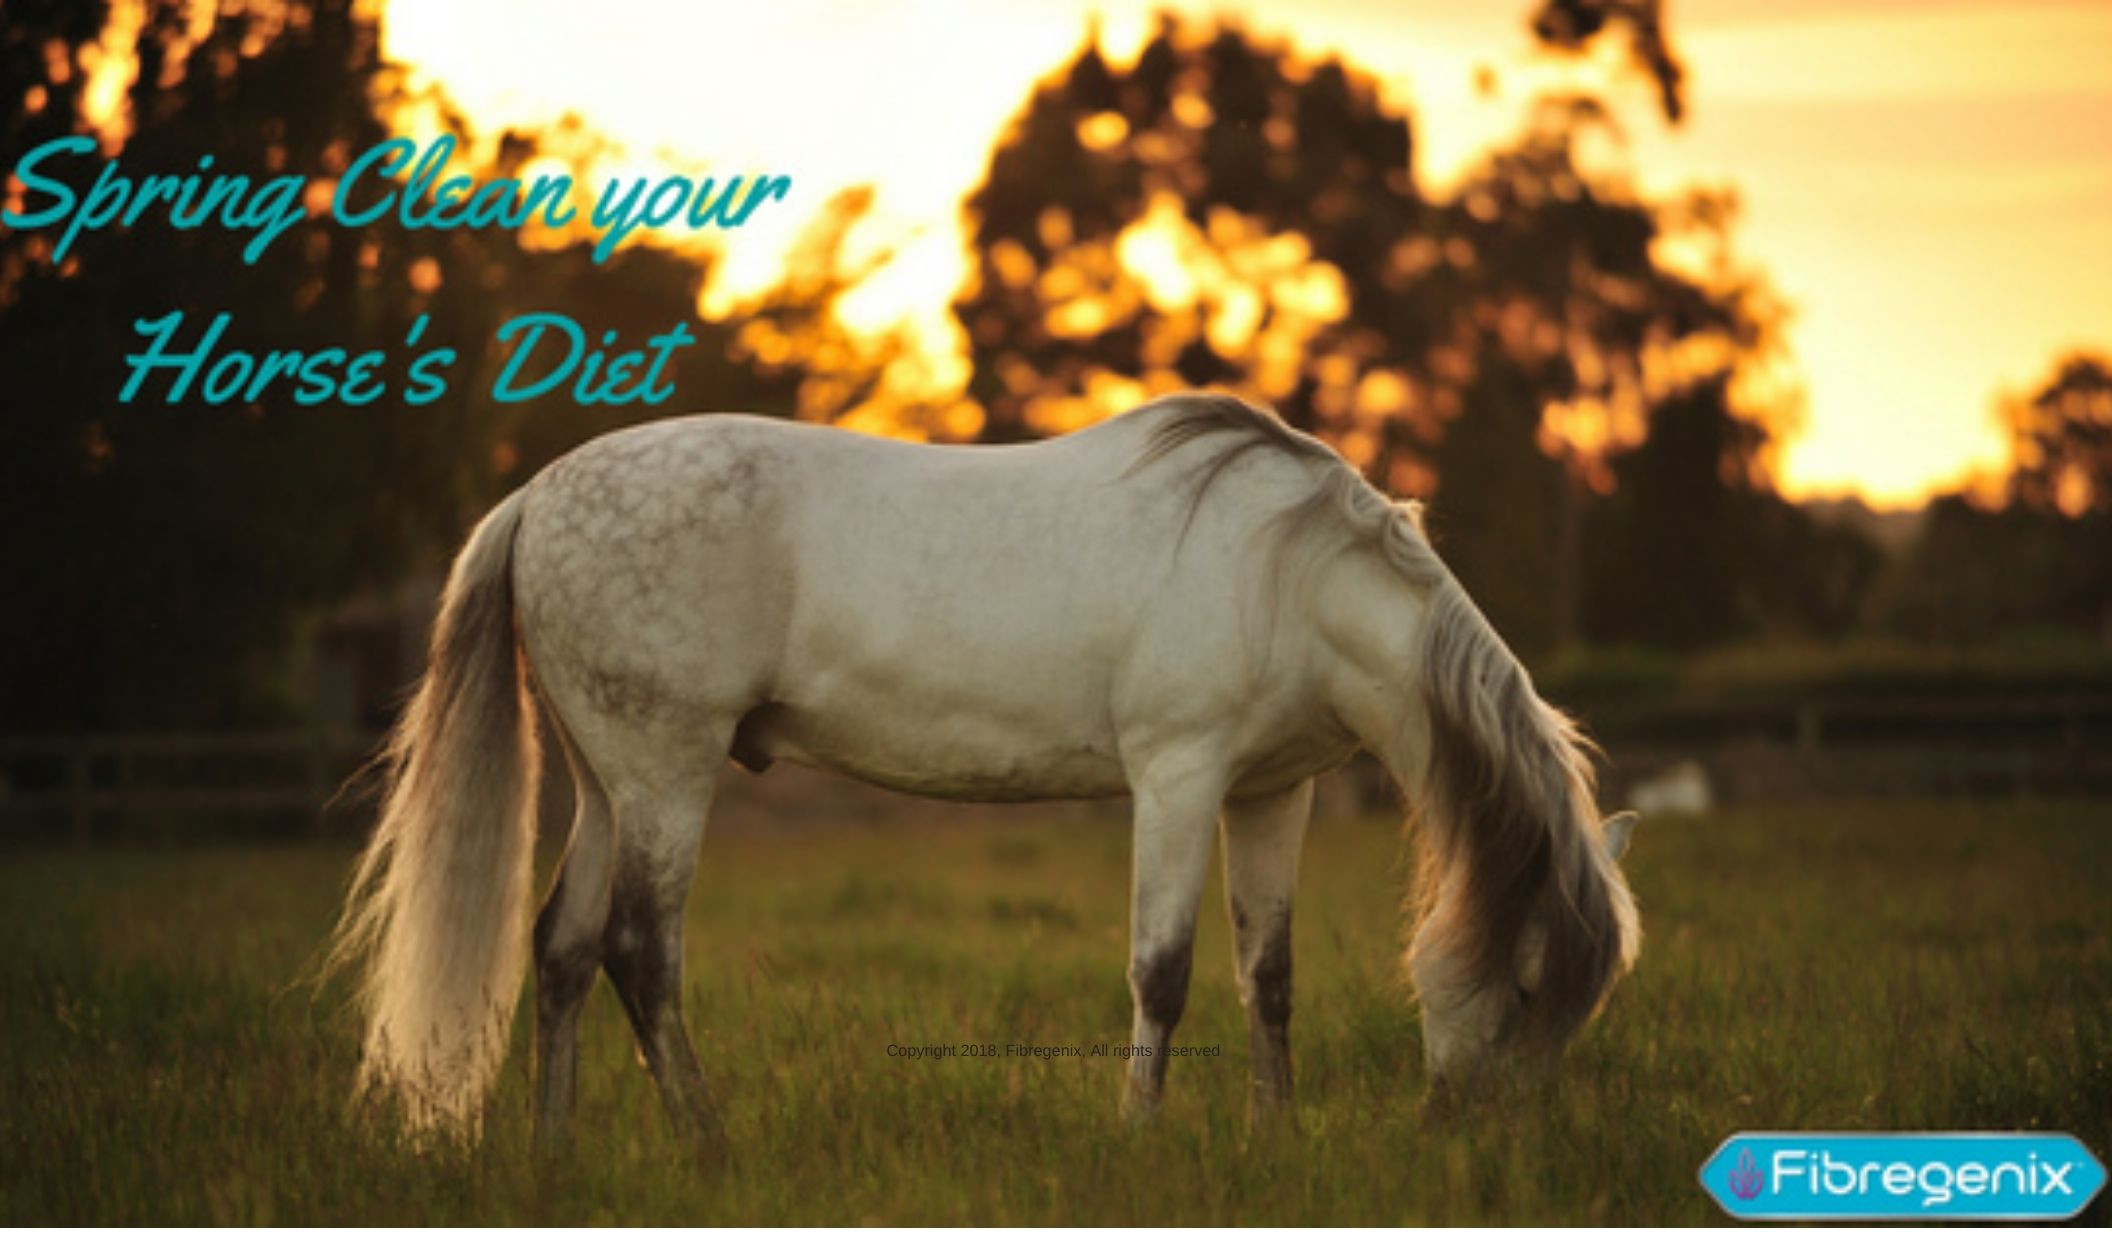 Spring Clean Your Horse's Diet